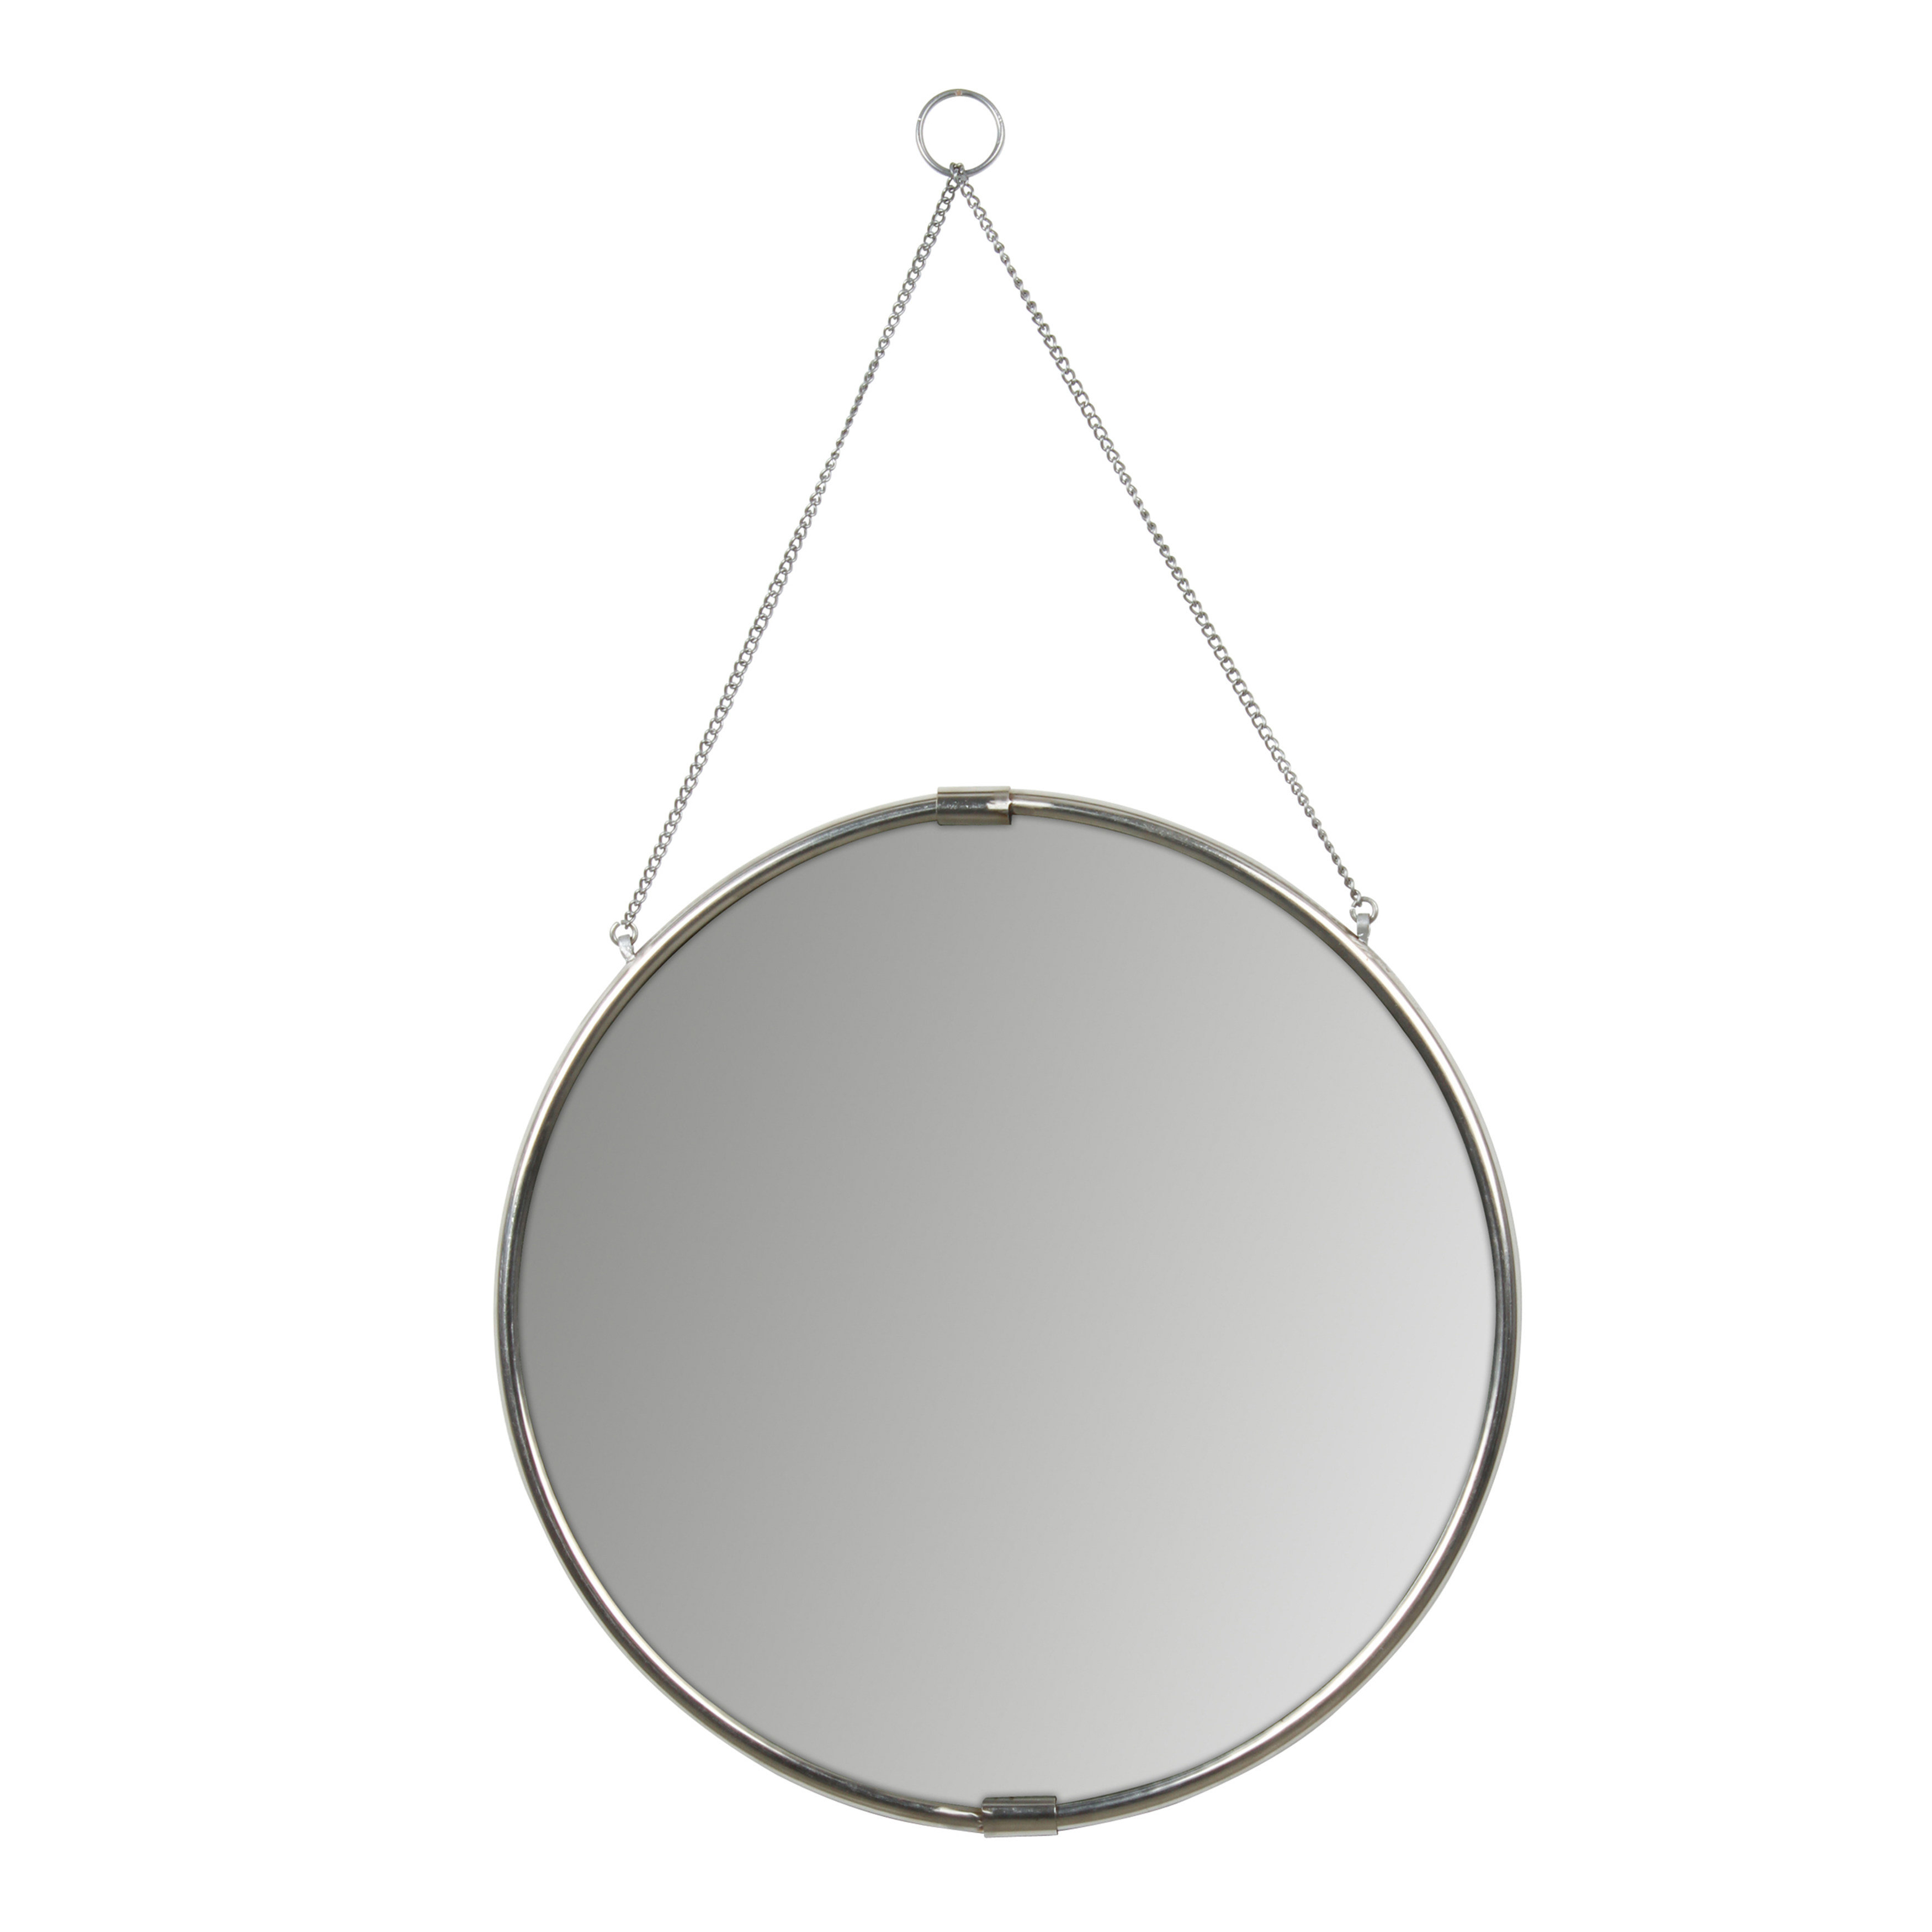 Preferred Brea Decorative Round Hanging Modern & Contemporary Wall Mirror Pertaining To Matthias Round Accent Mirrors (View 8 of 20)